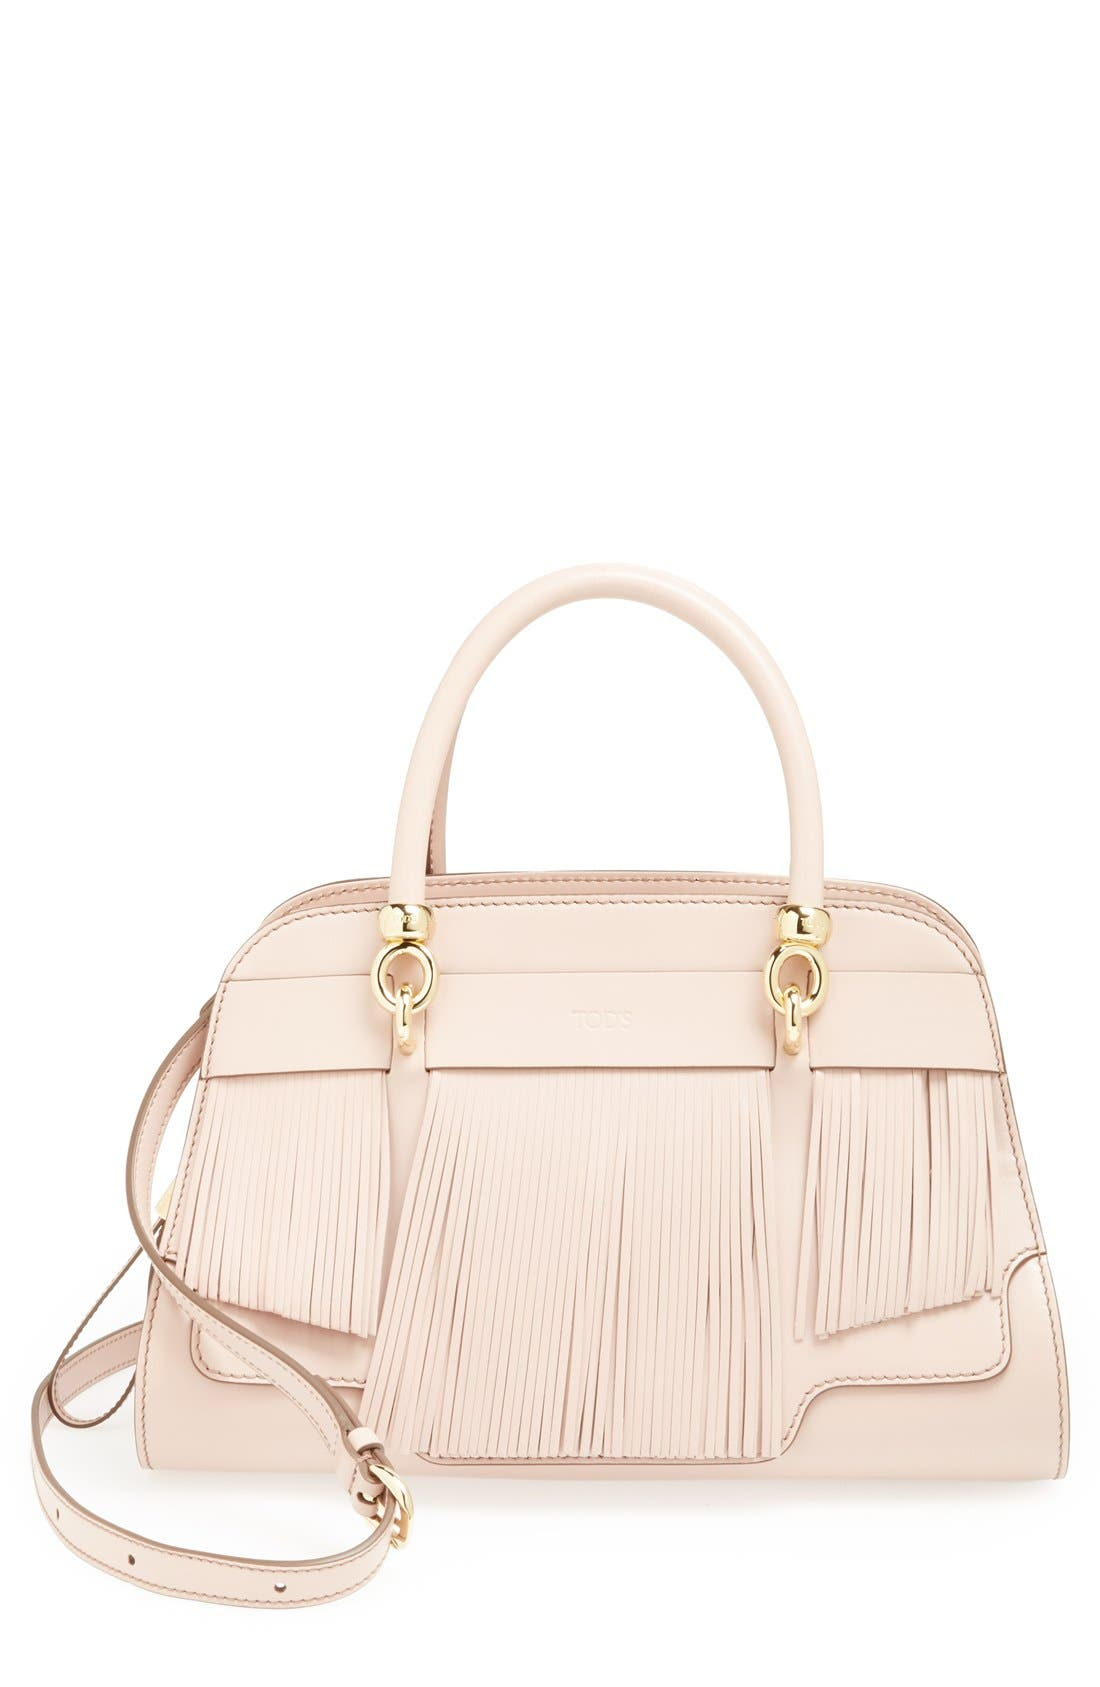 Alternate Image 1 Selected - Tod's 'Sella' Fringe Leather Satchel